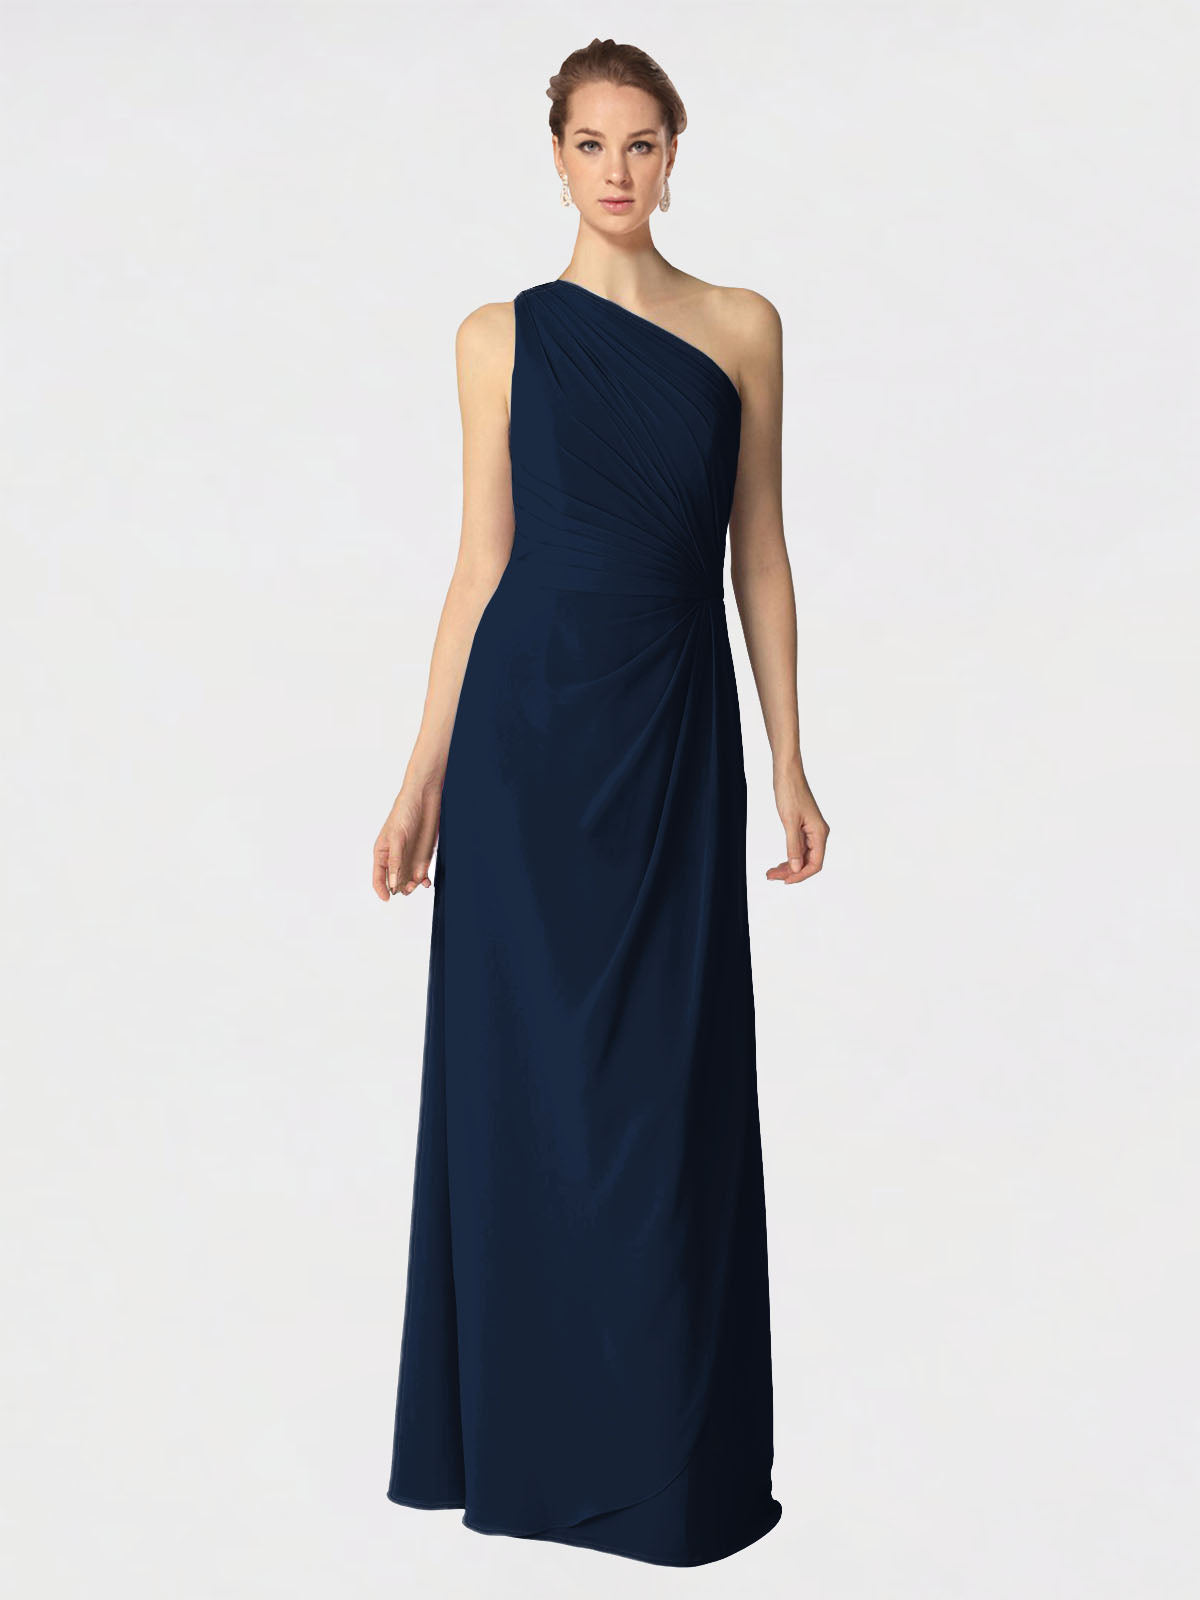 Long A-Line One Shoulder Sleeveless Dark Navy Chiffon Bridesmaid Dress Aurora